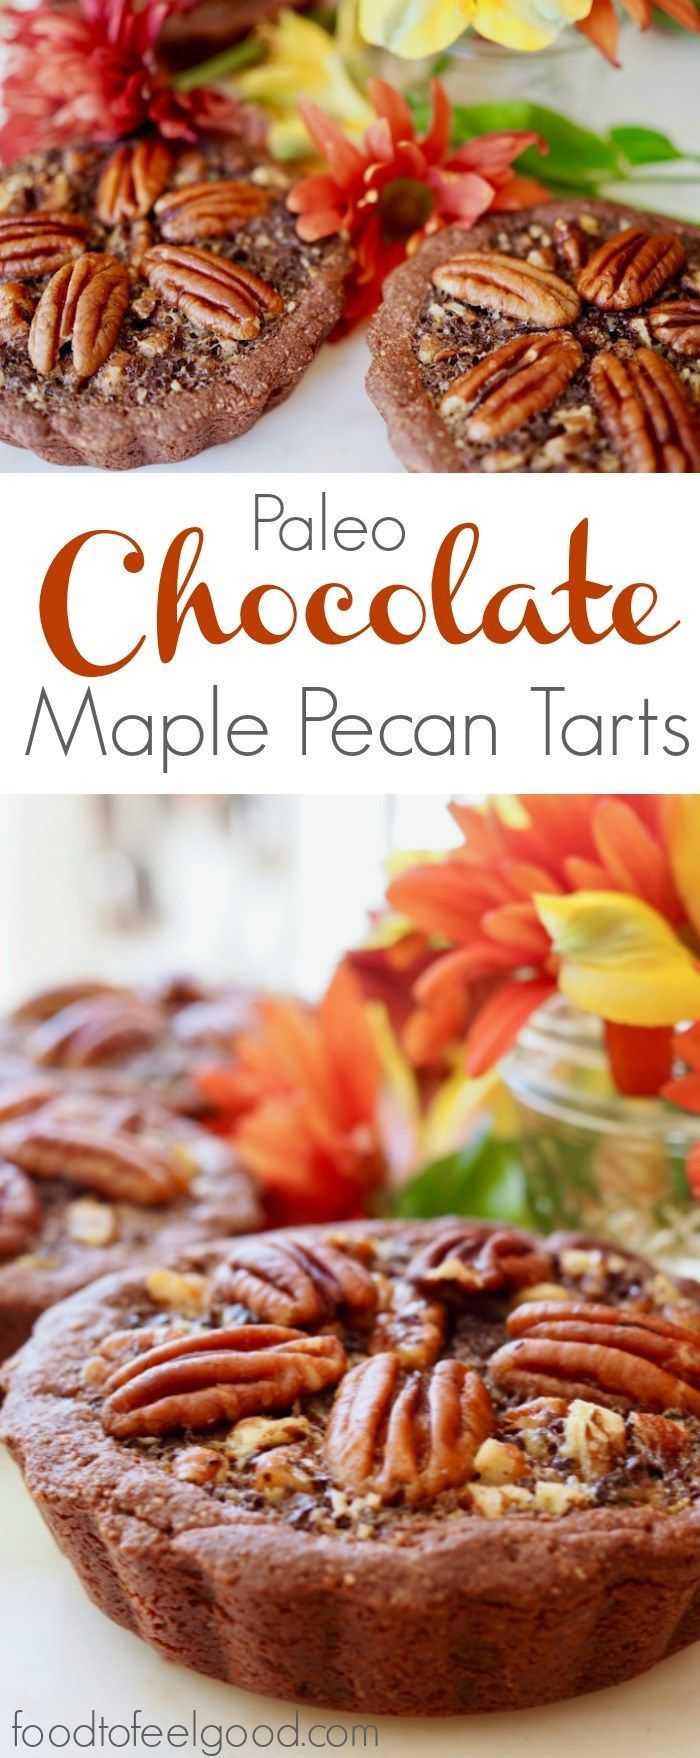 Paleo Chocolate Maple Pecan Tarts | These healthy, gluten-free, dairy-free treats are the perfect addition to your other holiday recipes. #paleo #glutenfree #dairyfree #christmascookies #dessert